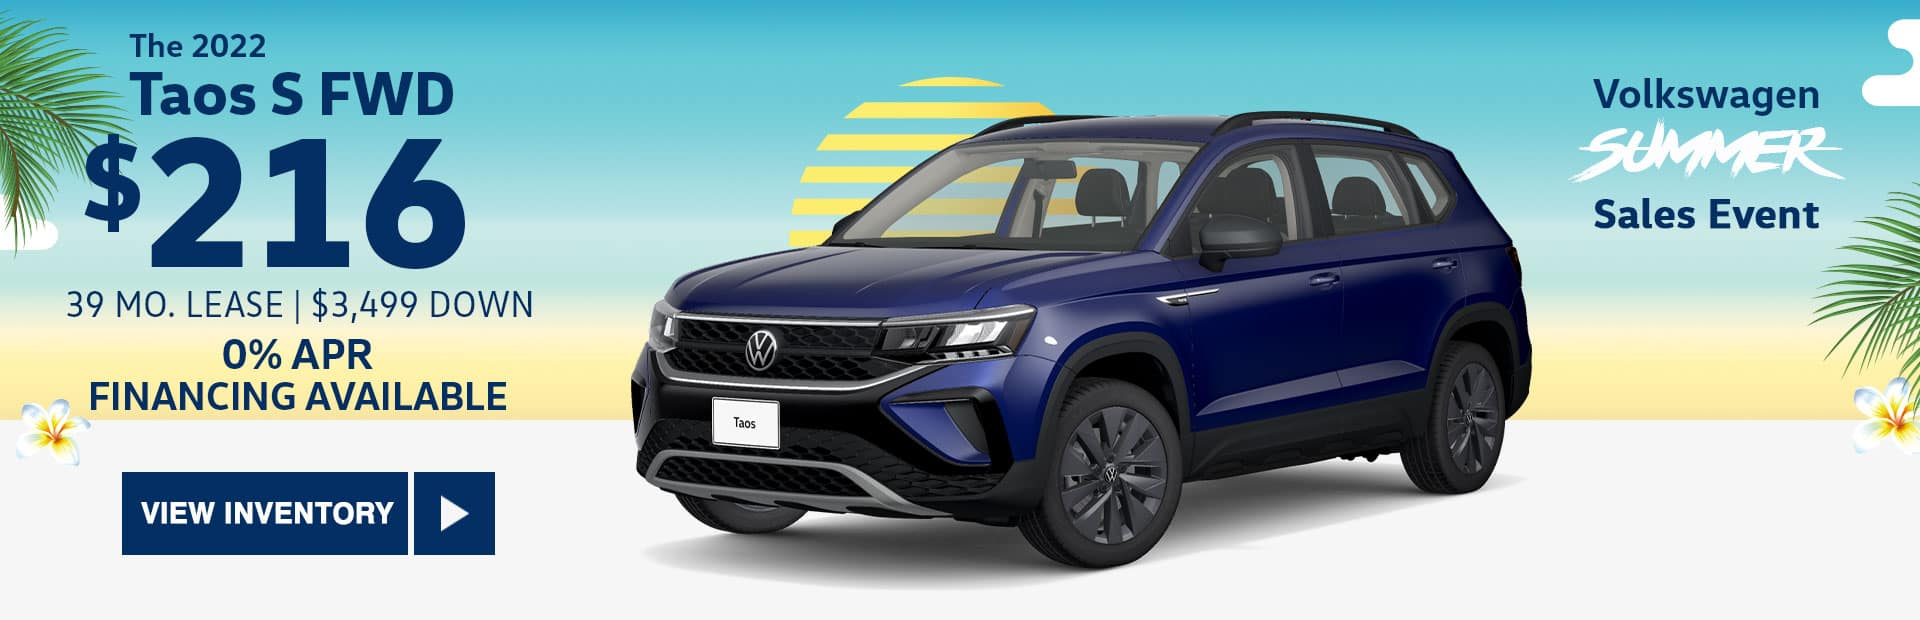 New 2022 VW Taos S lease special in glendale california